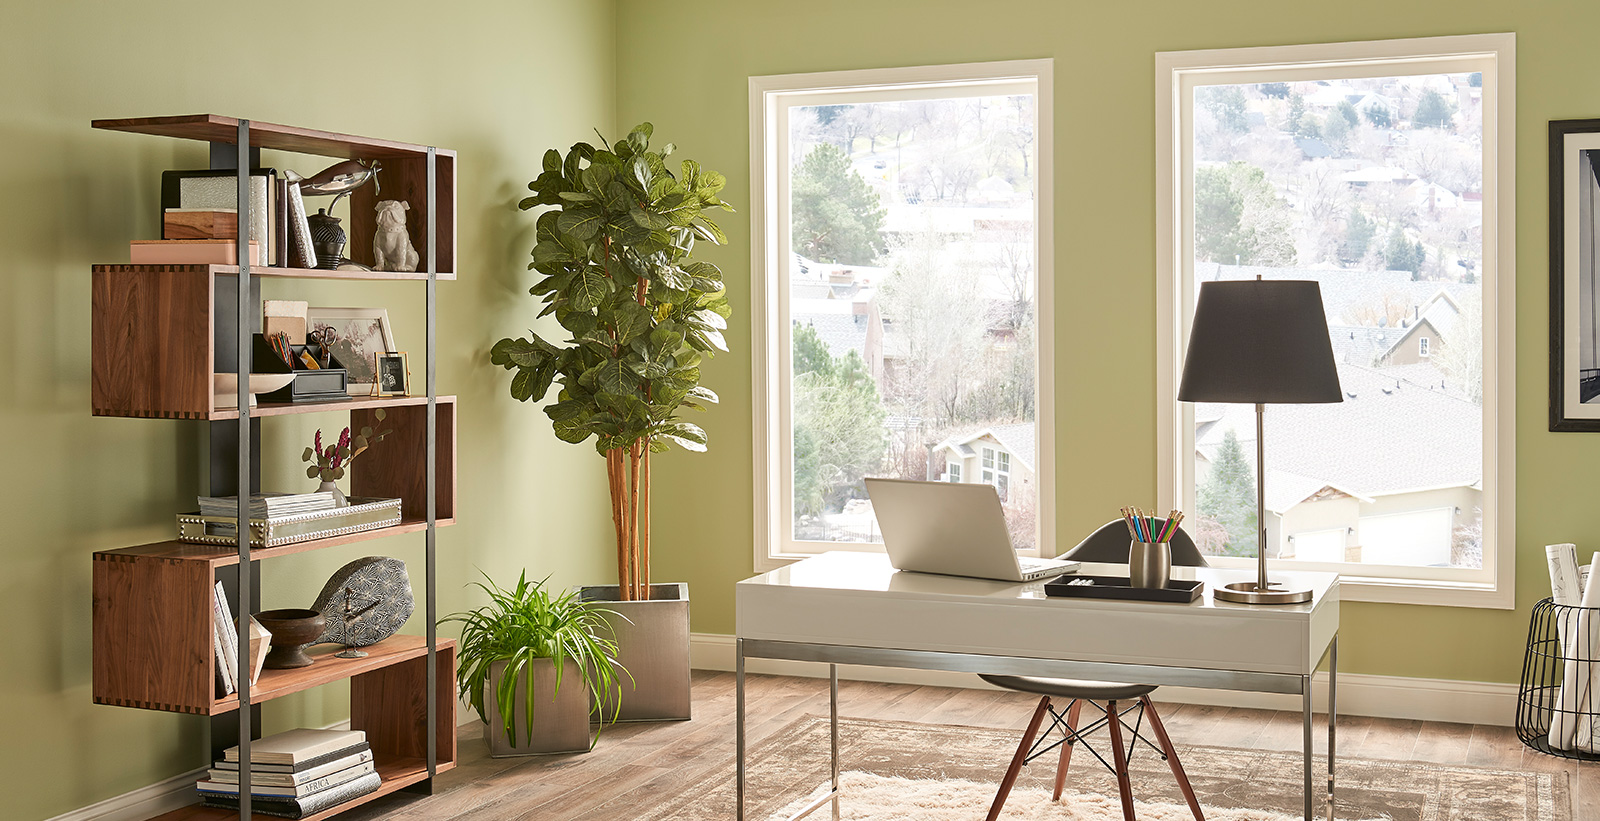 Office workspace with green walls and white trim, white desk, relaxed and calming style.